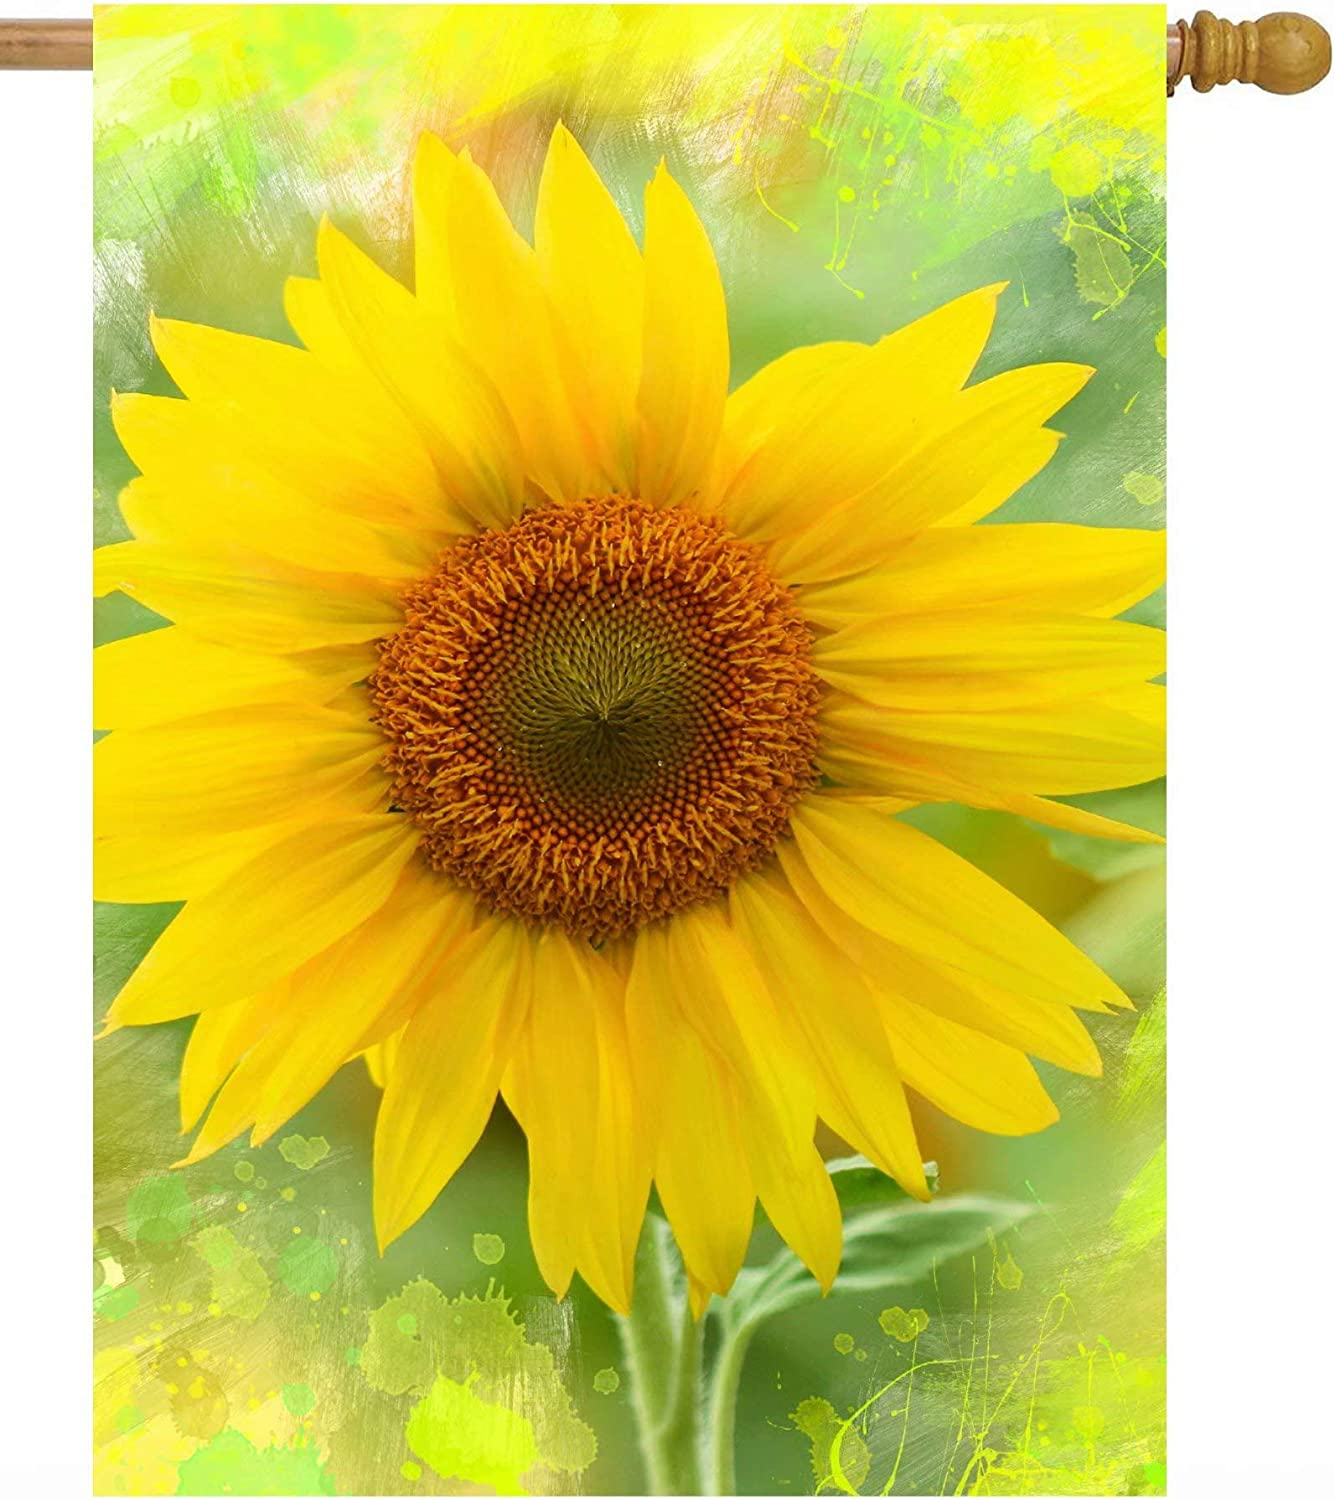 Pickako Watercolor Seasonal Sunflower Flowers Summer Spring Agriculture Landscape House Flag 28 x 40 Inch, Double Sided Large Garden Yard Welcome Flags Banners for Home Lawn Patio Outdoor Decor